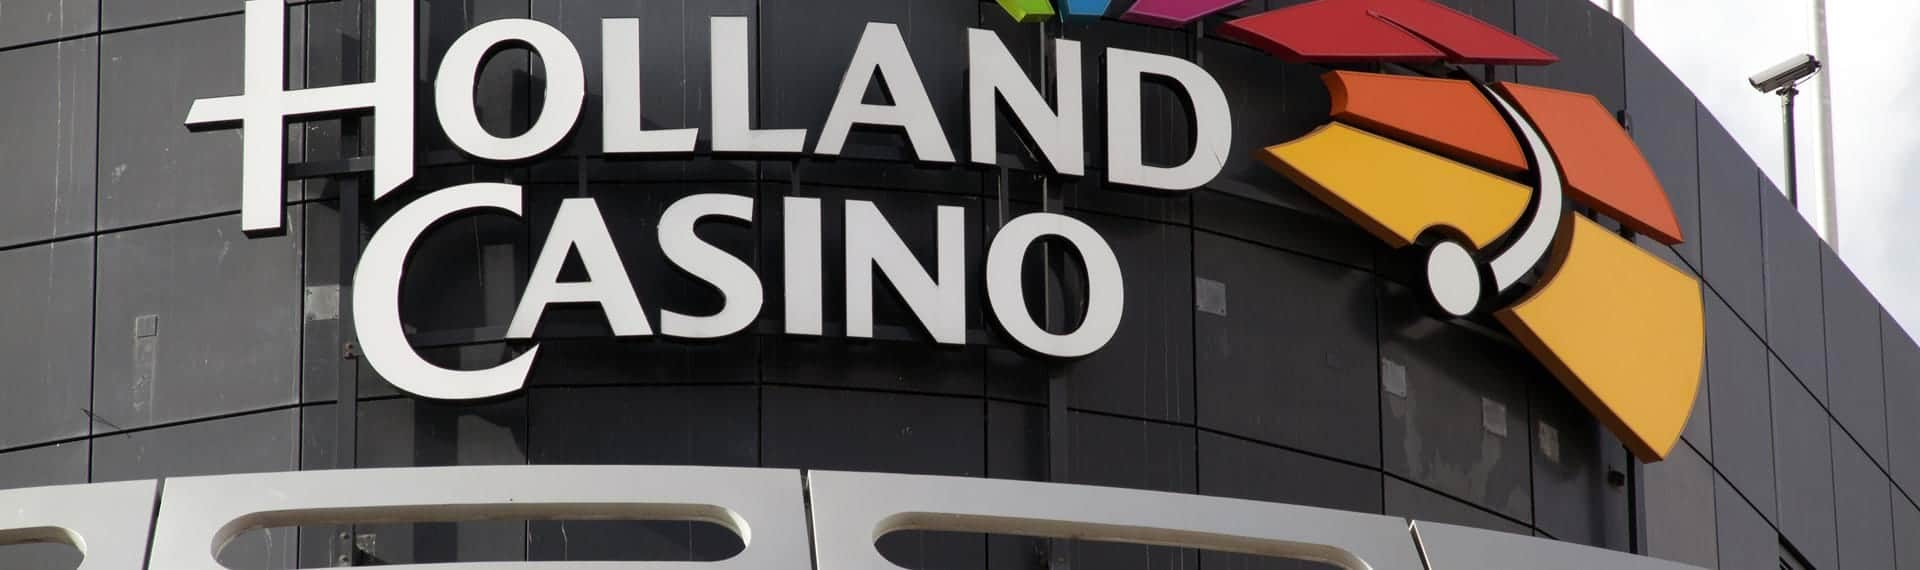 Holland Casino CS Heropening